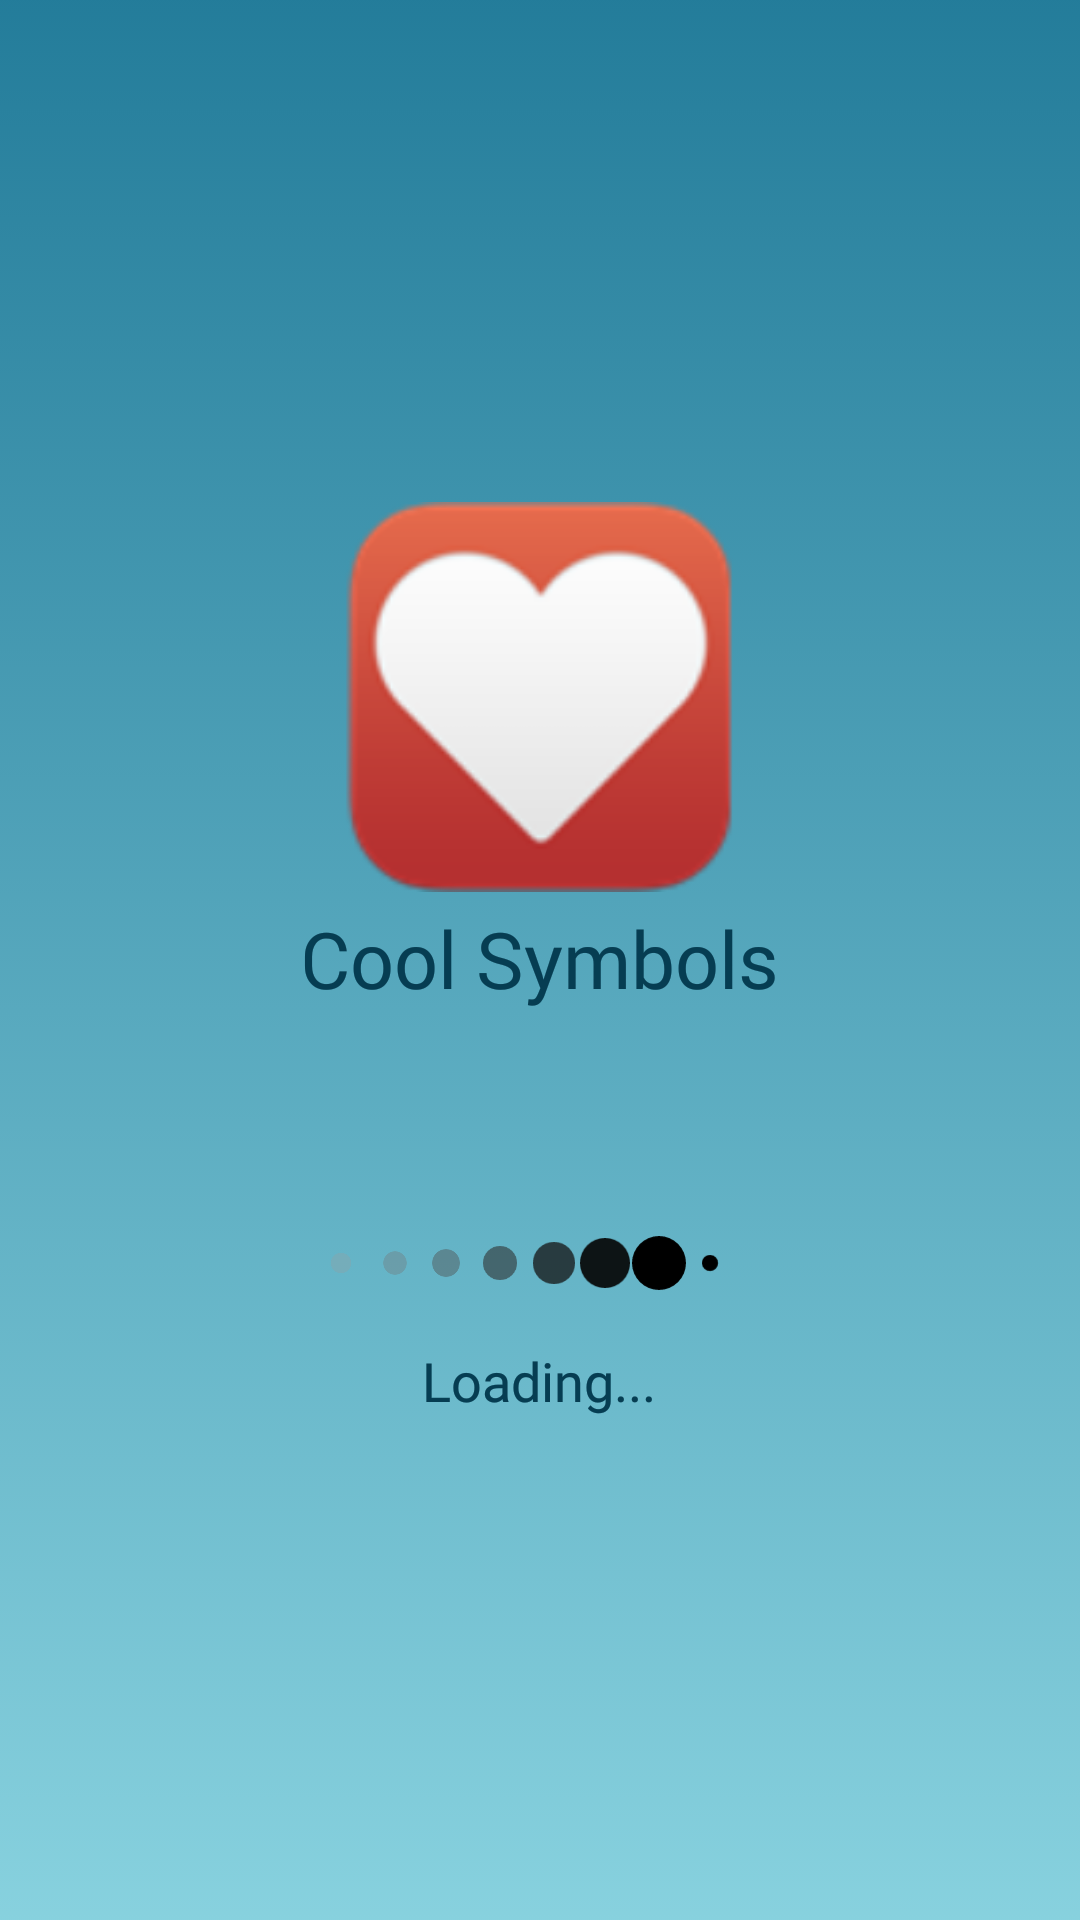 Amazon cool text symbols emoji appstore for android 000 biocorpaavc Image collections